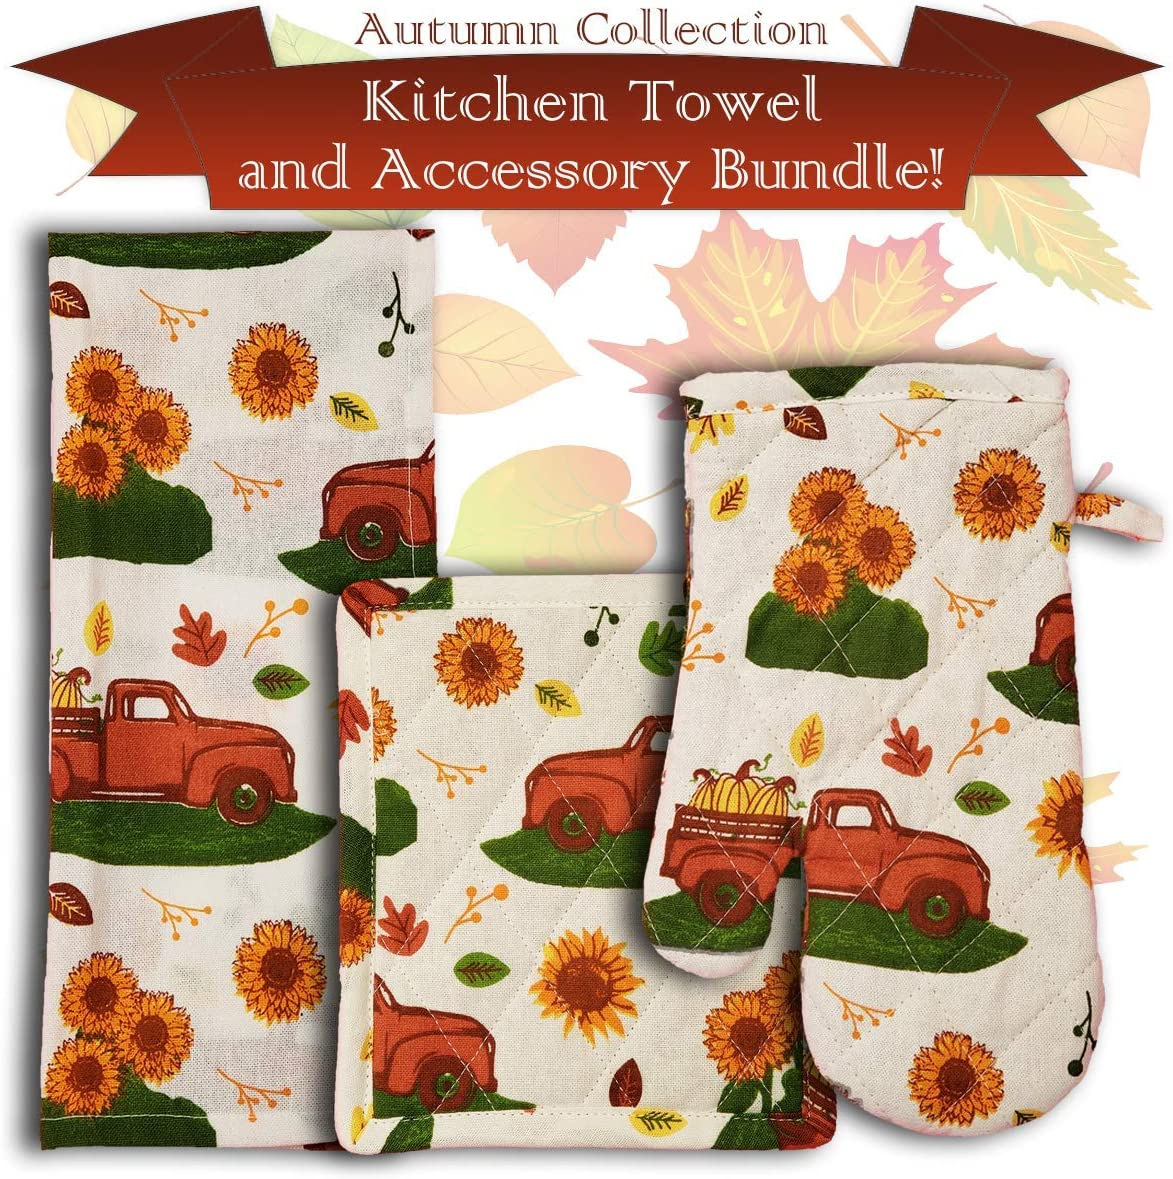 Retro Red Truck with Sunflowers Kitchen Towel and Accessory Set, Autumn Collection, Bundle Includes 2 Kitchen Towels, 1 Oven Mitt, and 1 Pot Holder All With Matching Autumn Theme